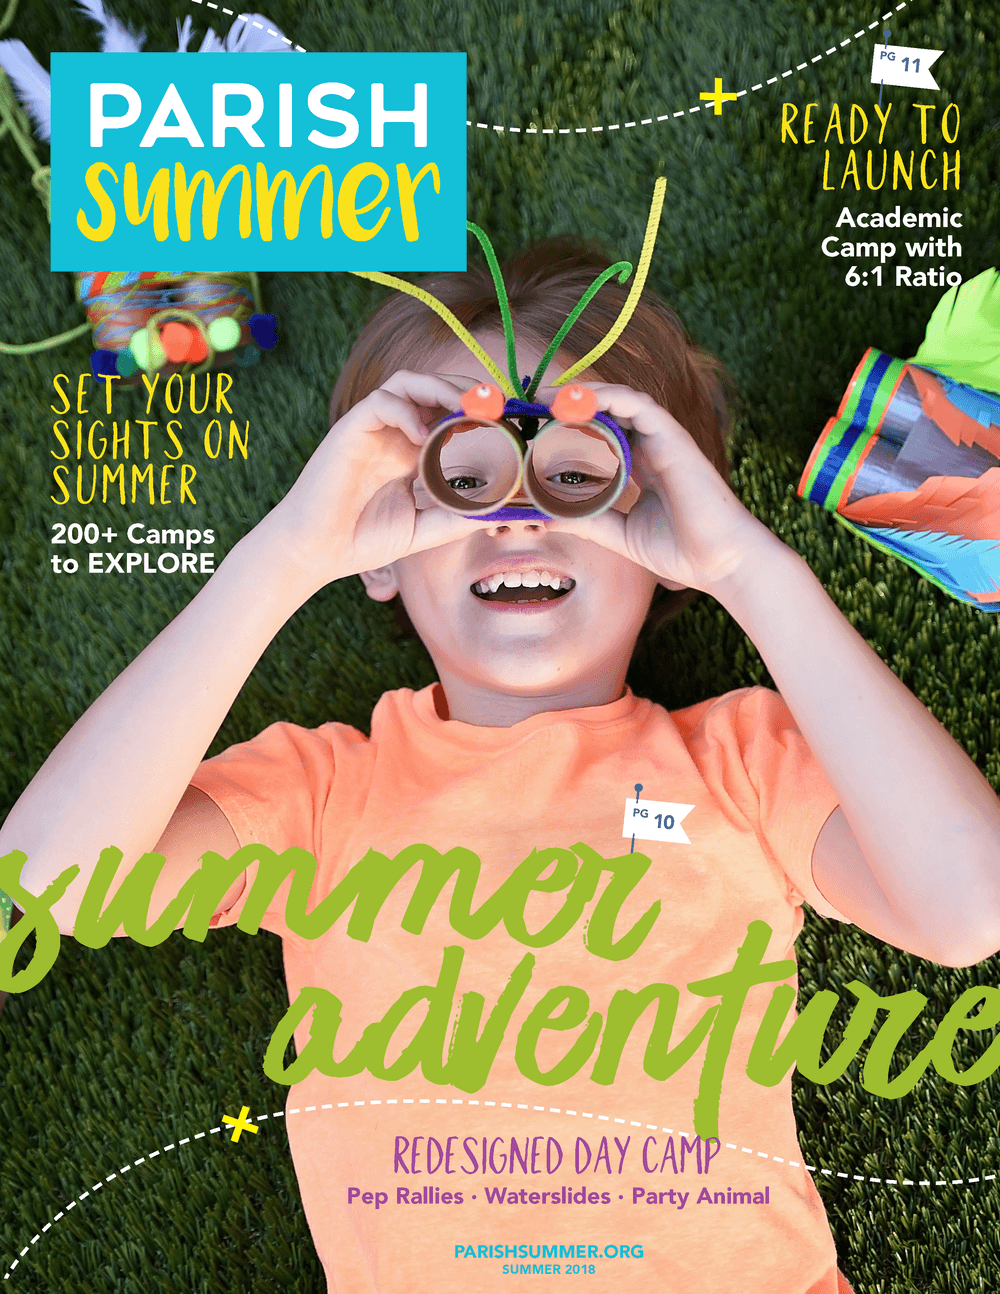 Picture of the Parish Summer 2018 catalog cover. Parish Summer offers more than 200 day camps for kids in Dallas, Texas.